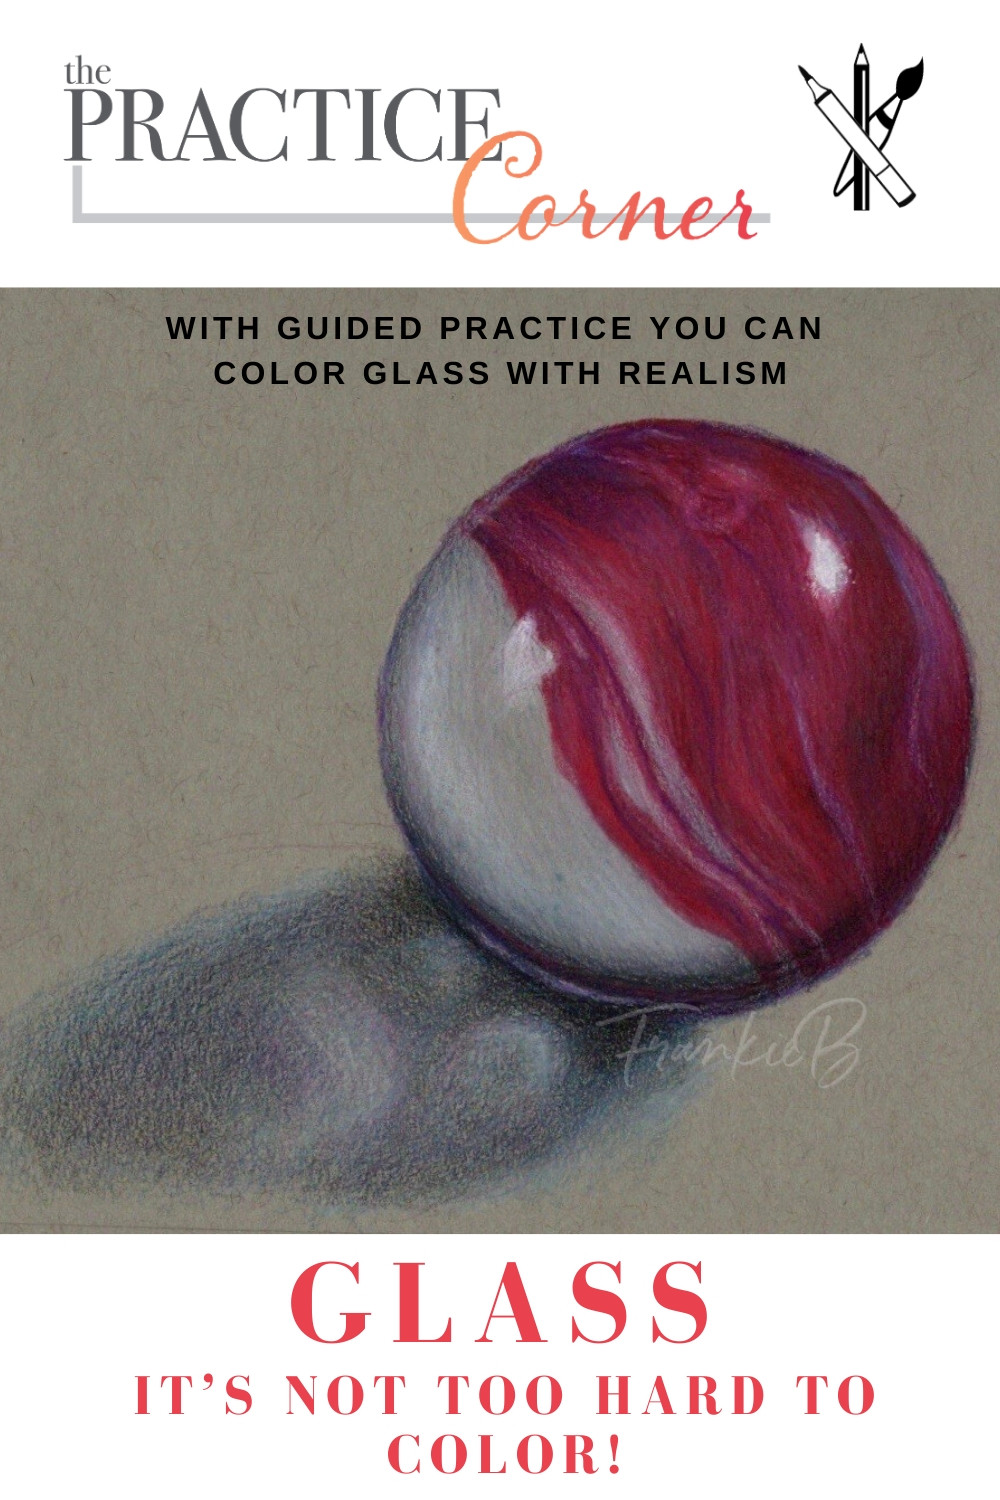 How to improve your coloring | What to practice with colored pencils | What to practice with Copic Markers | #coloredpencil #coloredpencilpractice #thepracticecorner #realisticcoloring #coloringtechniques #coloringingglass